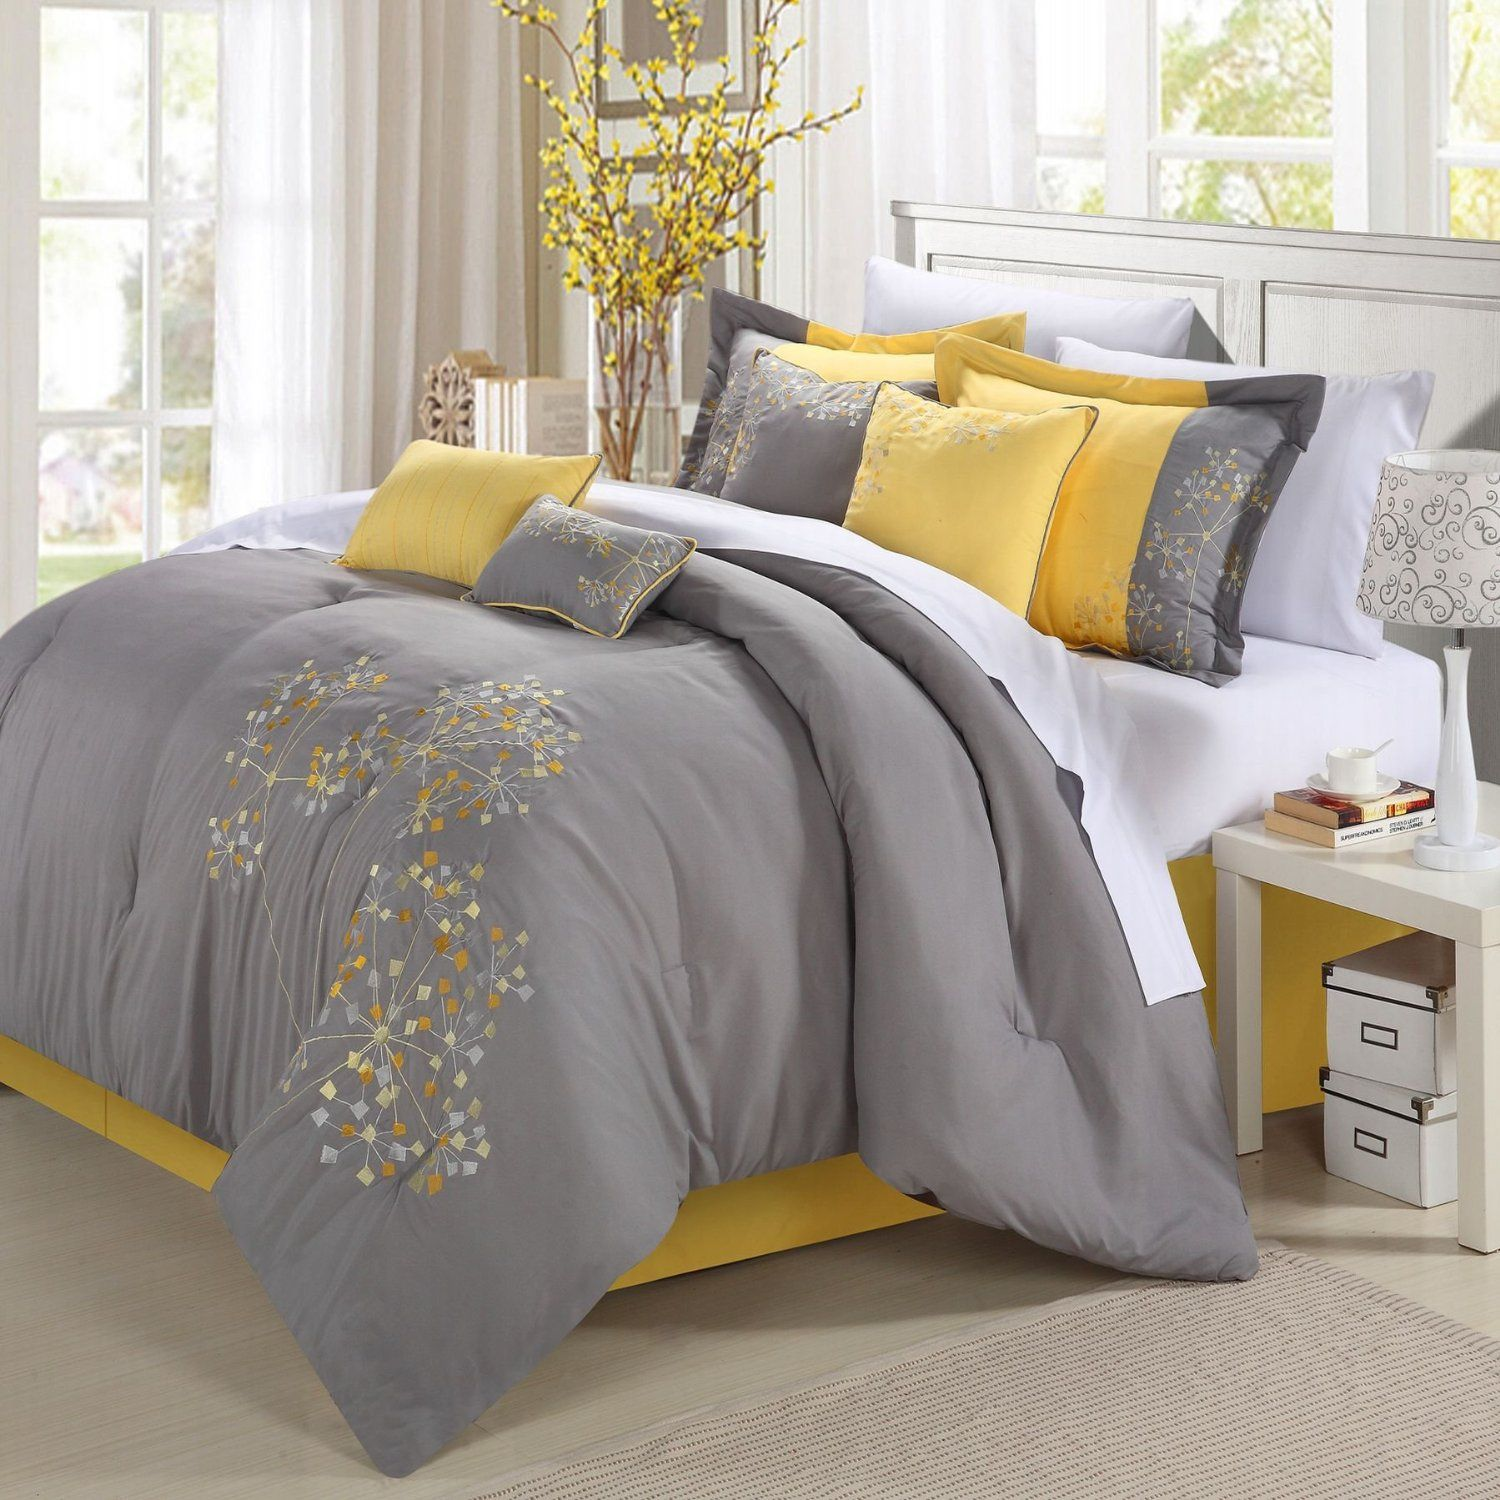 and pinterest pin in bed yellow set grey gray bedding college neville stuff comforter